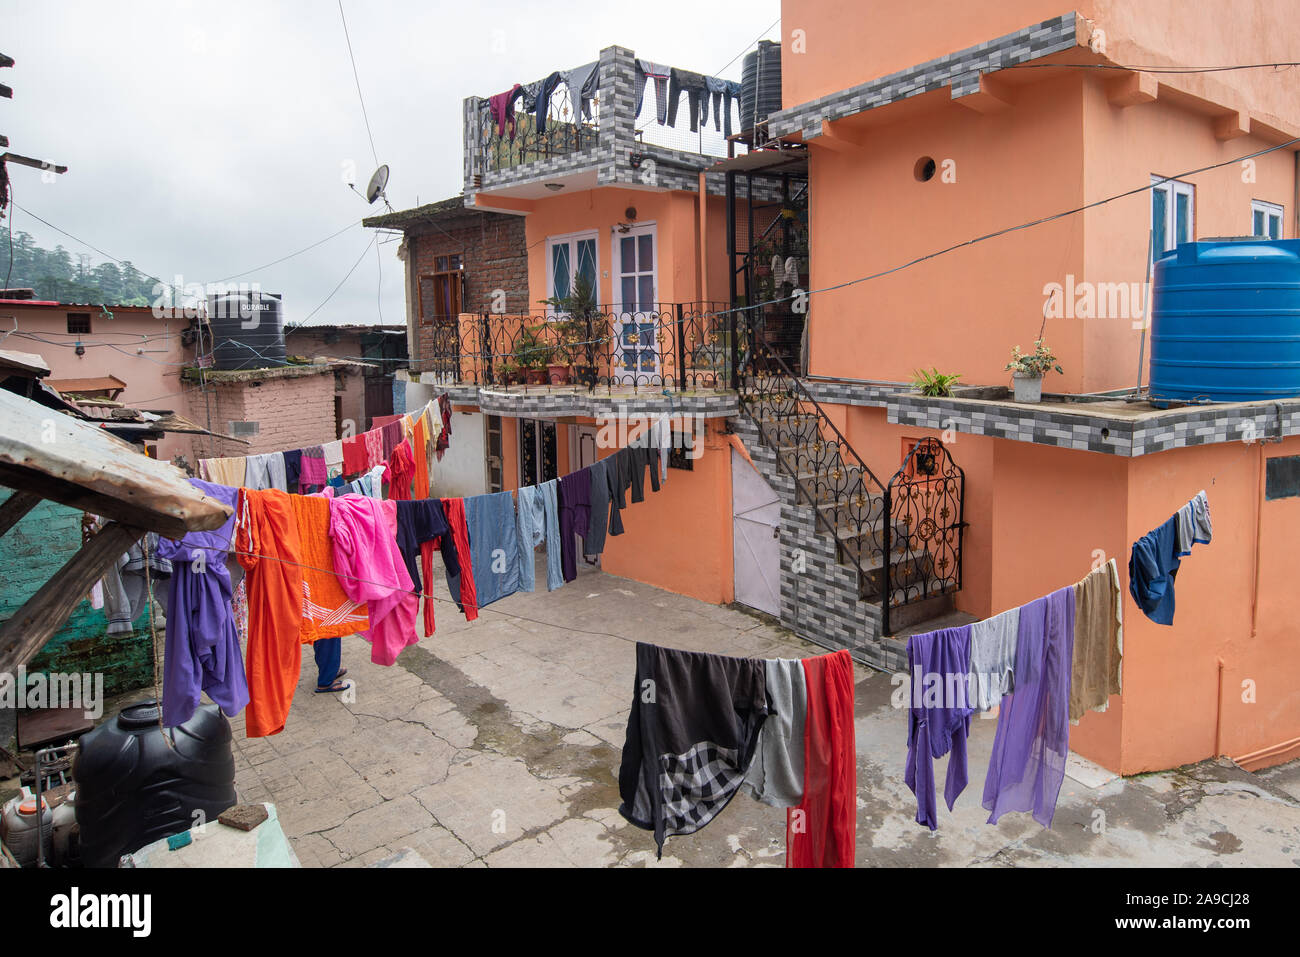 View of houses hugging the hillside in Shimla constructed close to each other. In the foreground clothes are being dried Stock Photo